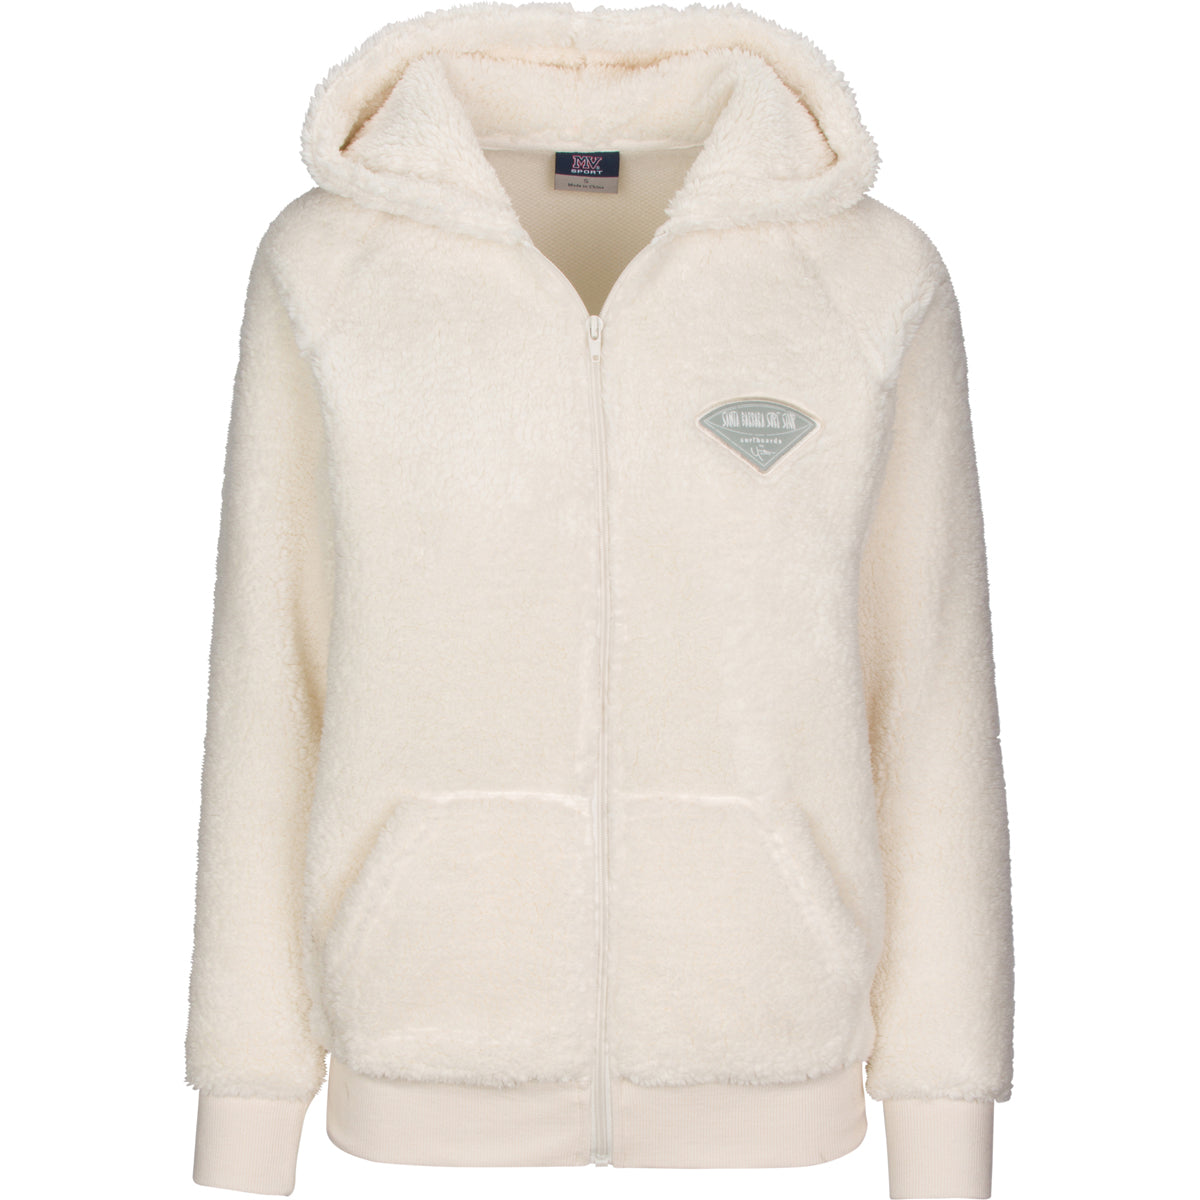 Women's Sherpa Full Zip Hoodie with Santa Barbara Surf Shop Logo Patch